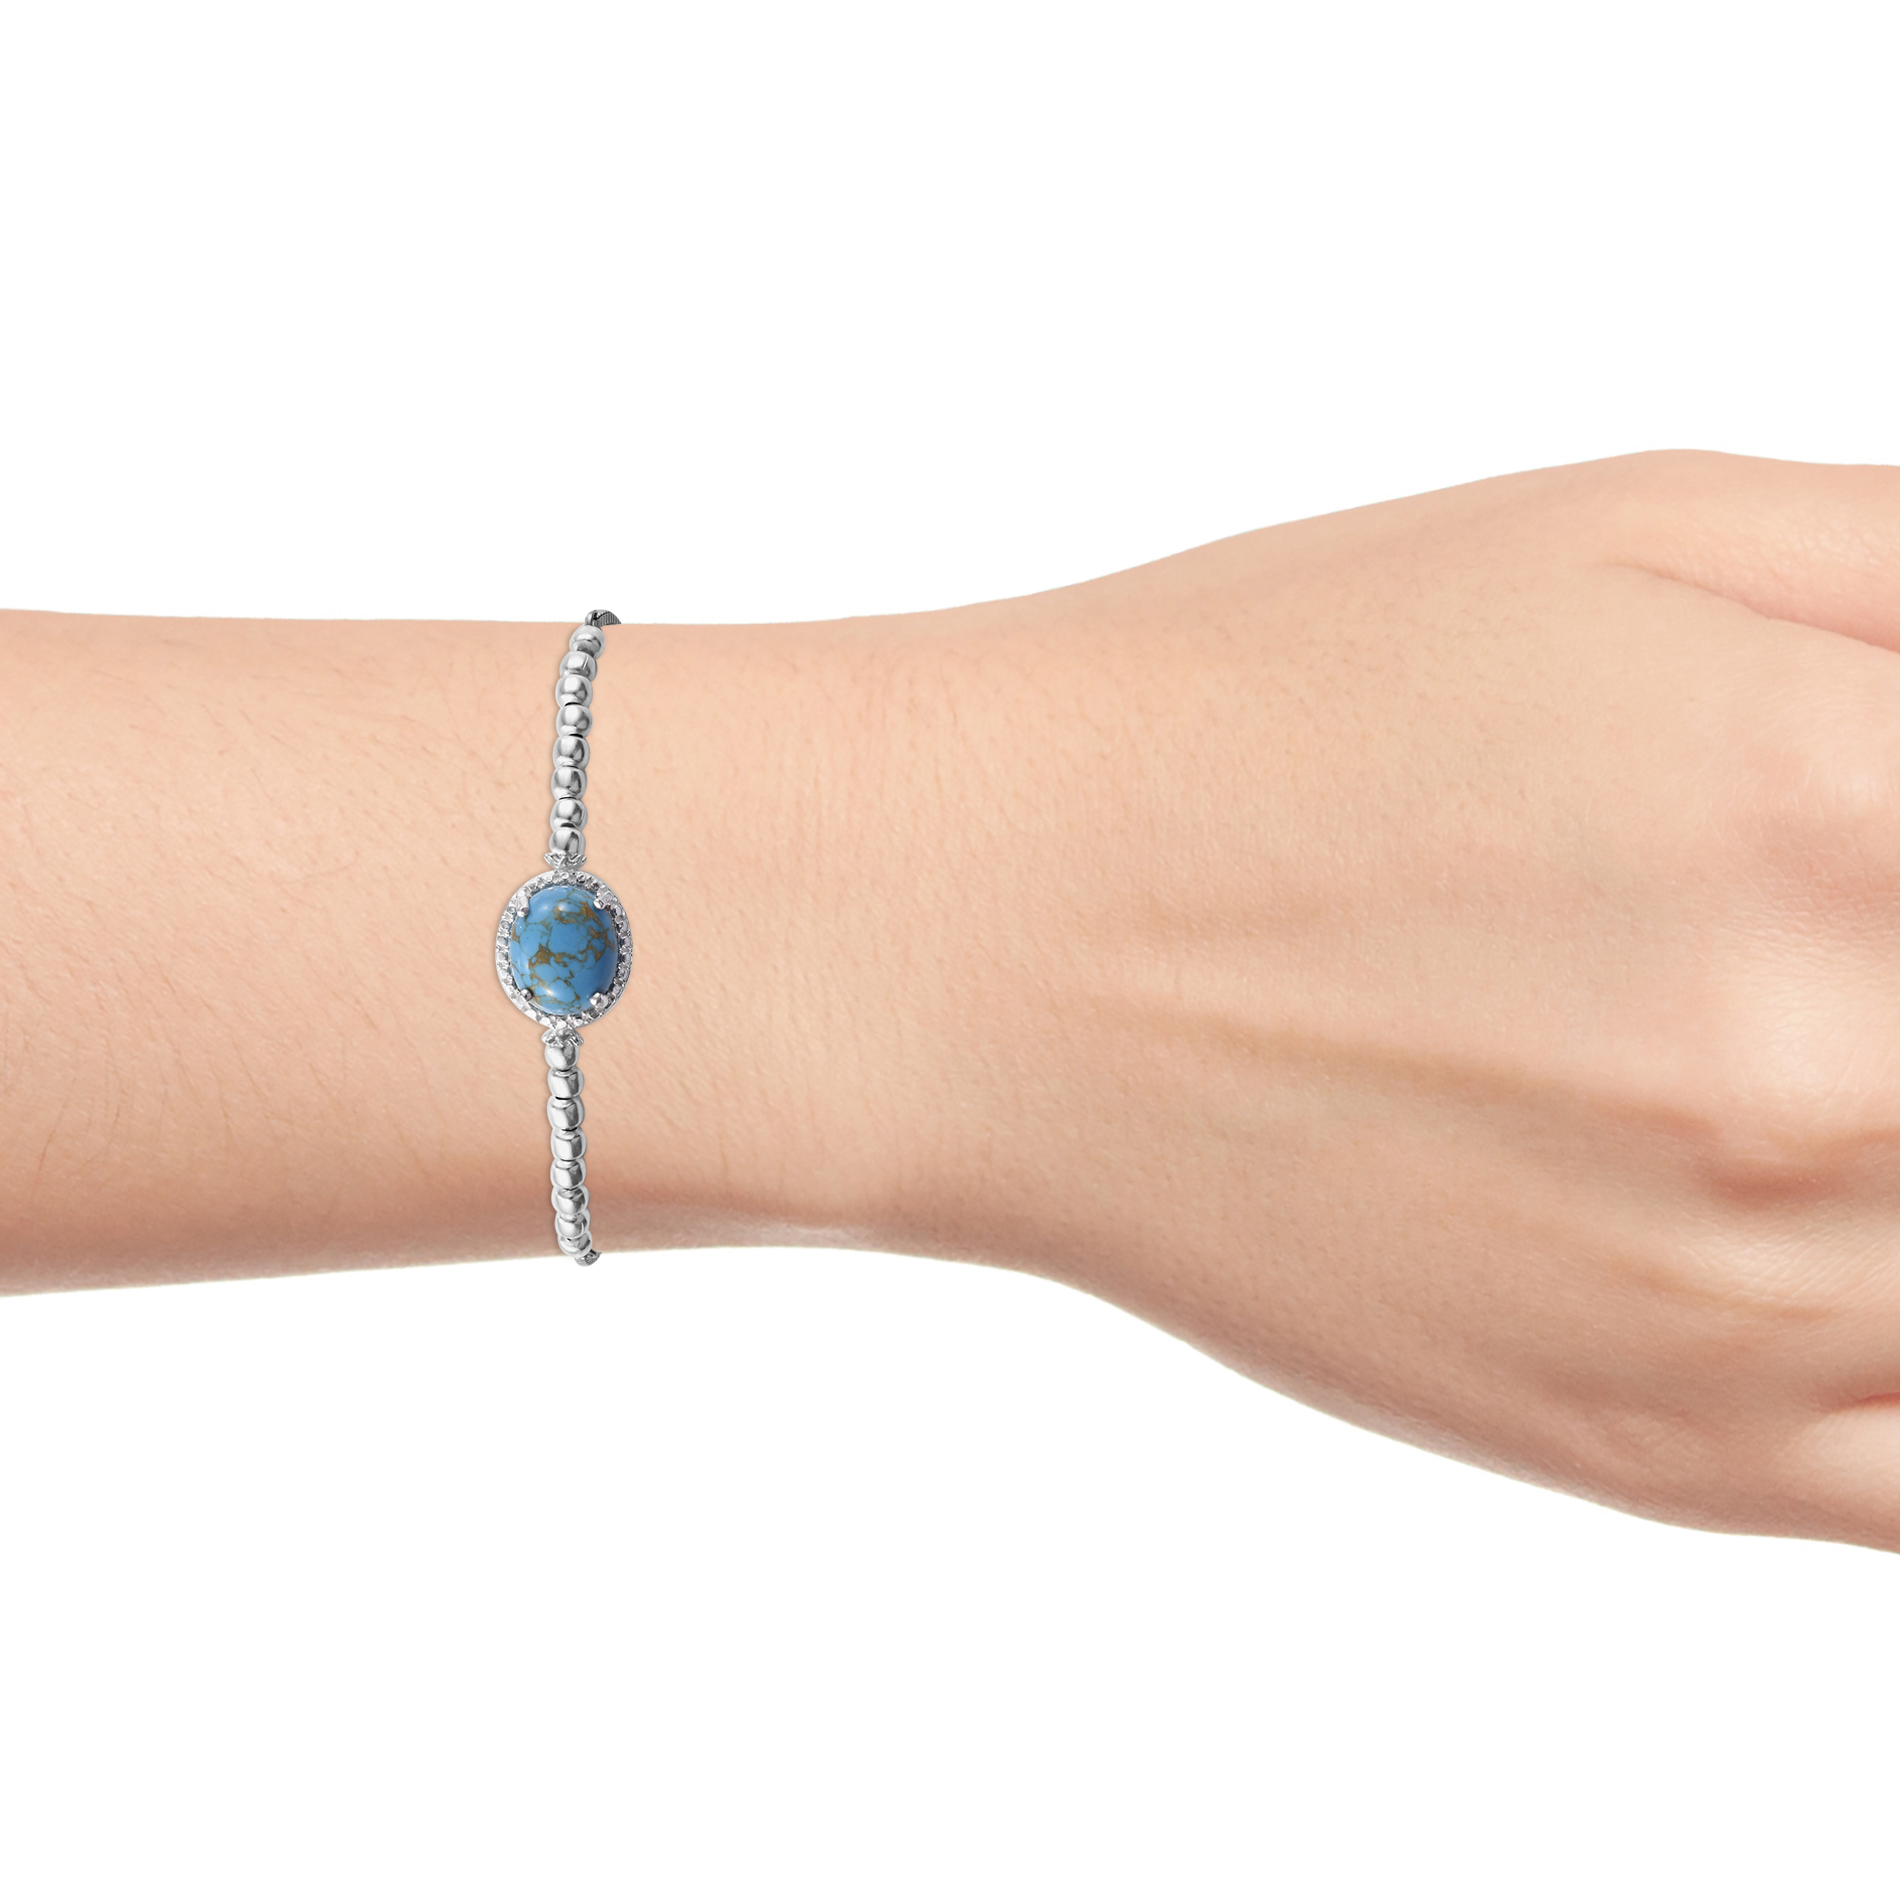 Bolo Bracelet 925 Sterling Silver Oval Blue Turquoise Gift Jewelry for Women